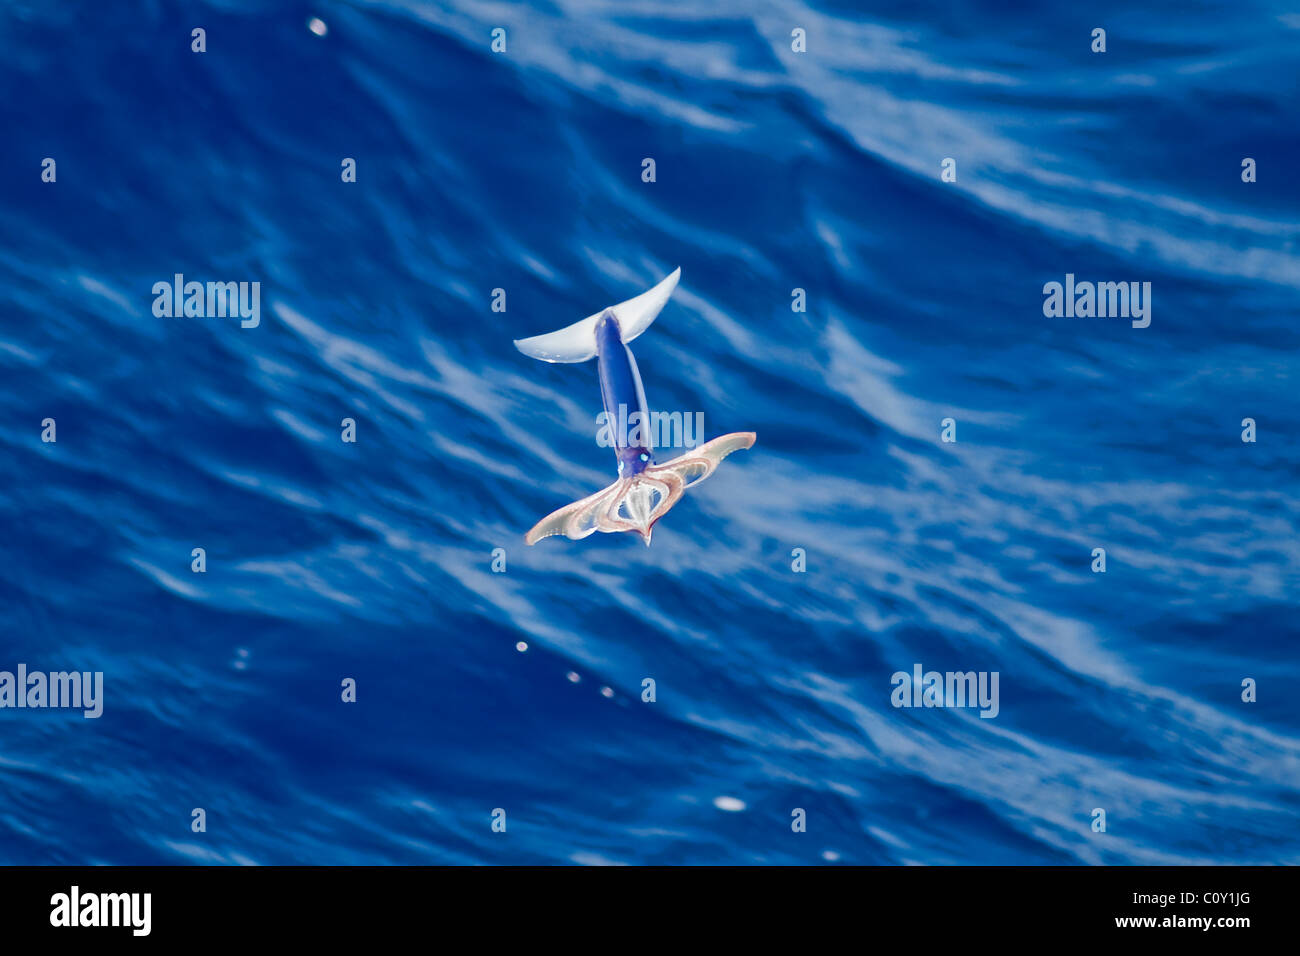 Very rare image of a Neon Flying Squid Species (Ommastrephes bartramii) in mid-air, South Atlantic Ocean. - Stock Image